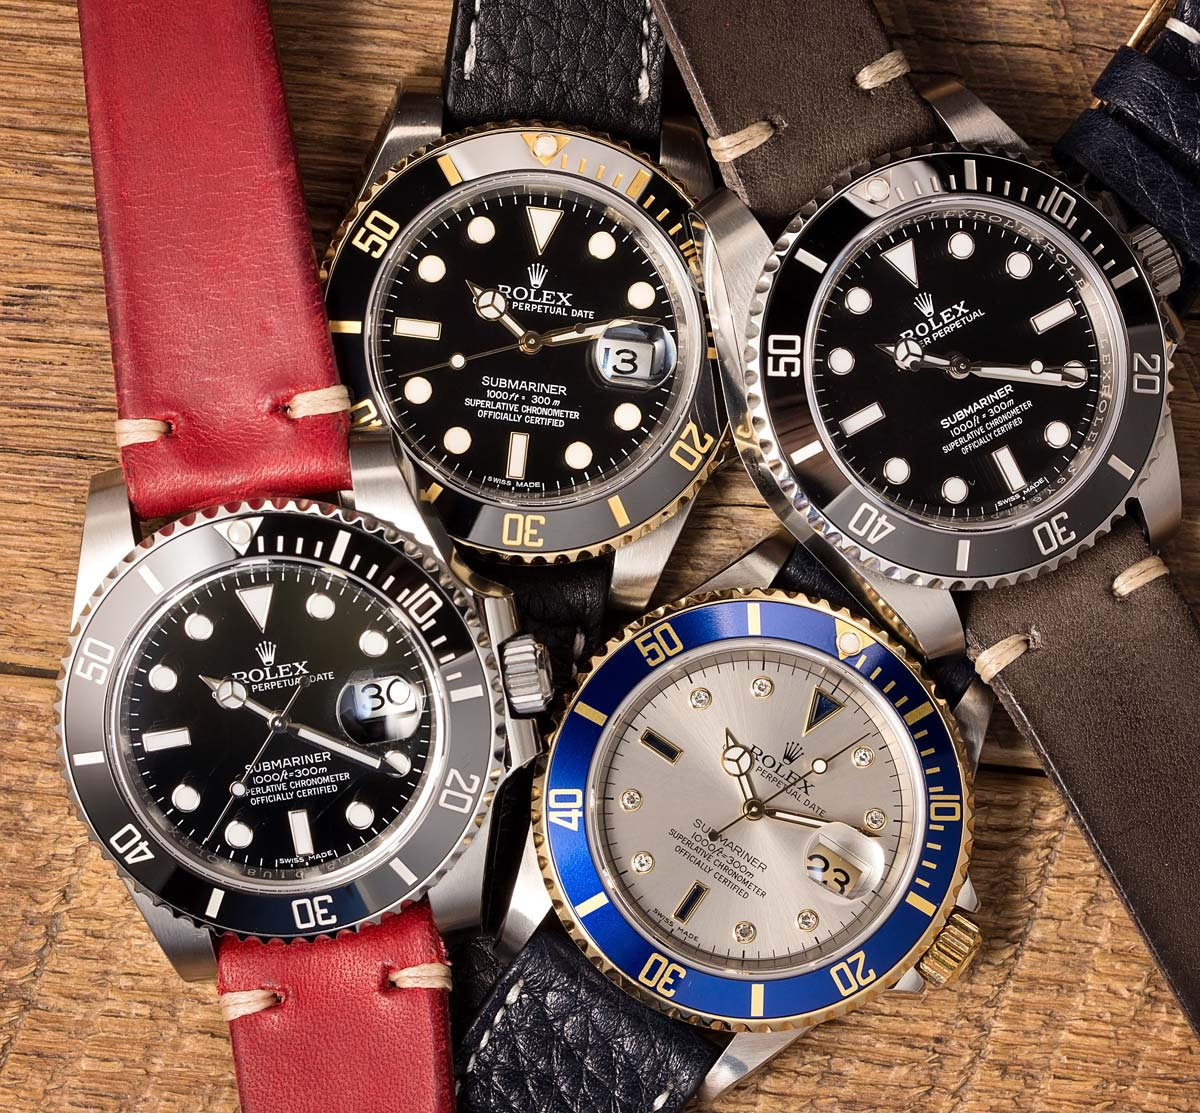 Why are Pre-Owned Rolex Watches More Expensive than New Rolexes - Submariner dive watches